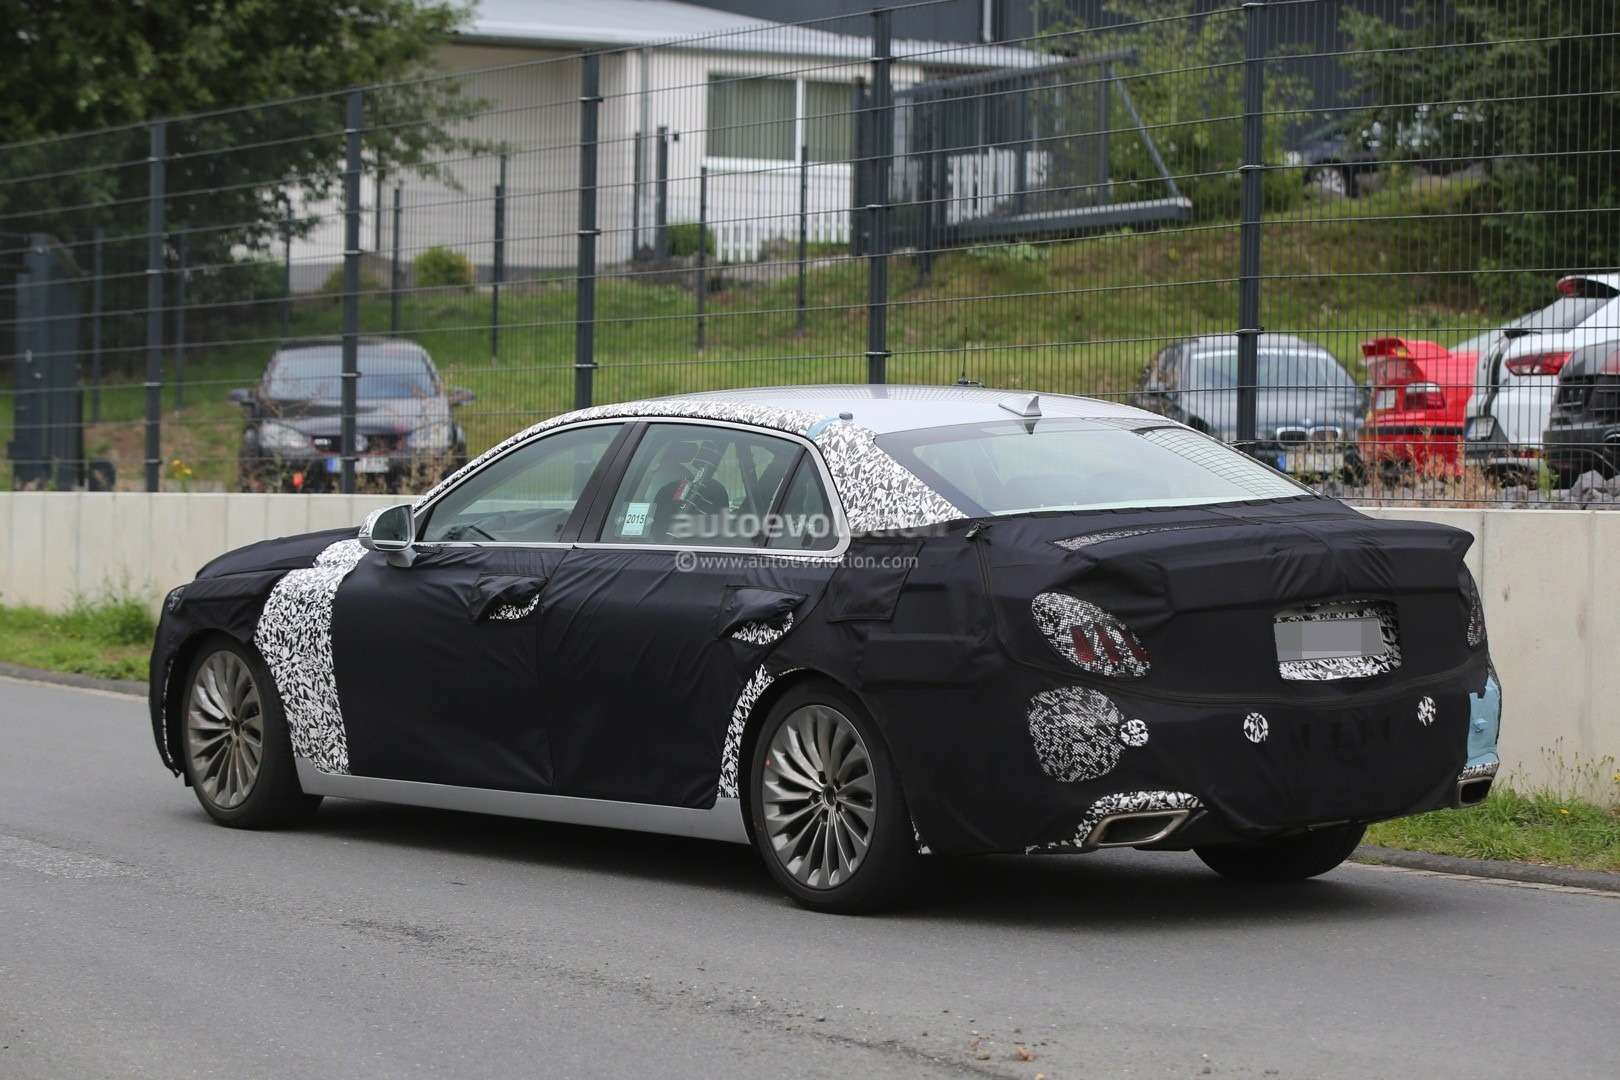 2017-hyundai-equus-spied-out-testing-in-germany-photo-gallery_5